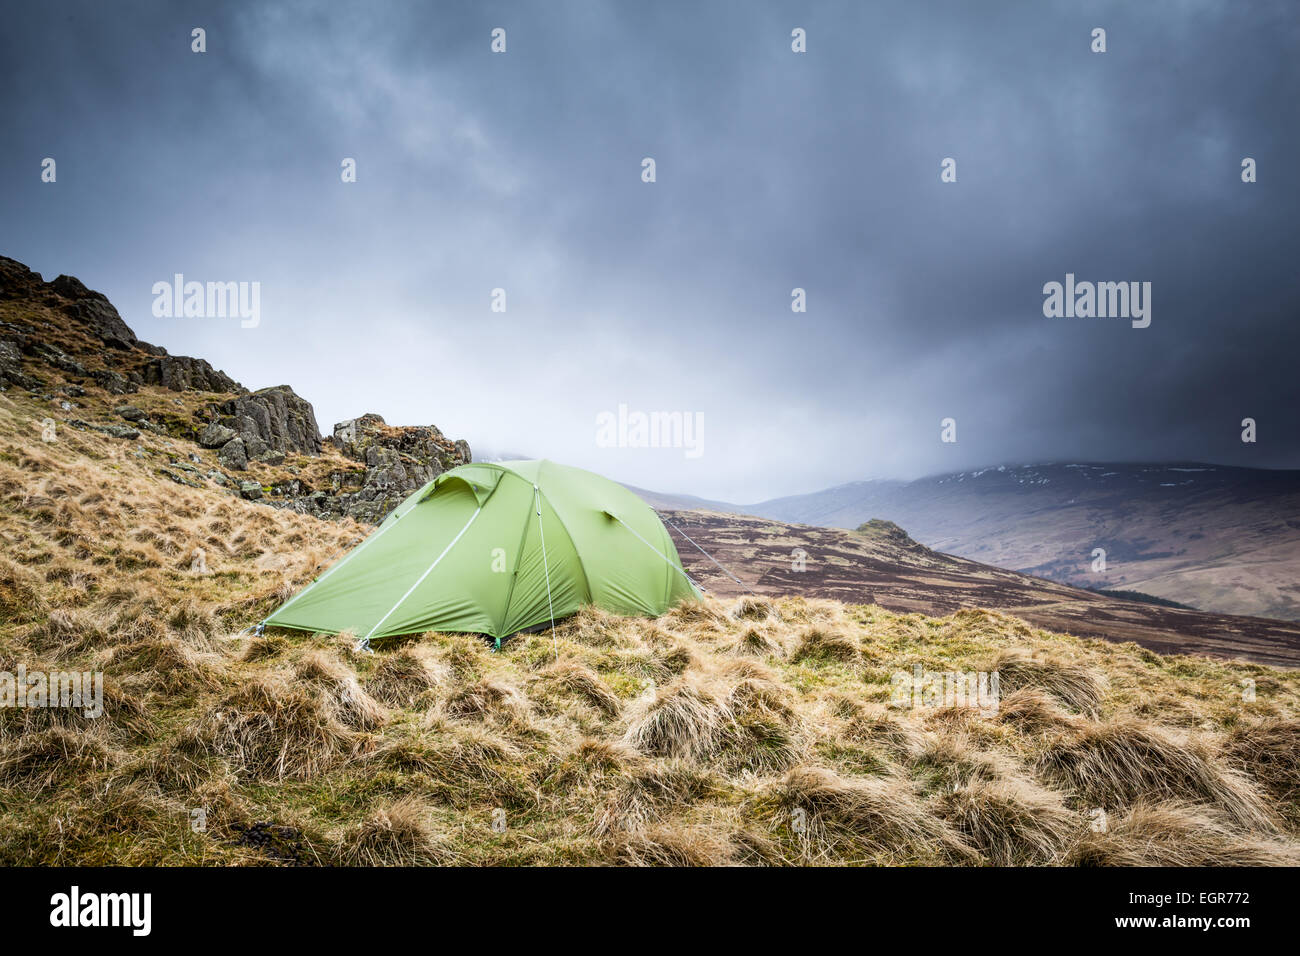 Wild Camping at the end of Winter at Langlee Crags overlooking Cheviot hill in the wild Northumberland countryside - Stock Image